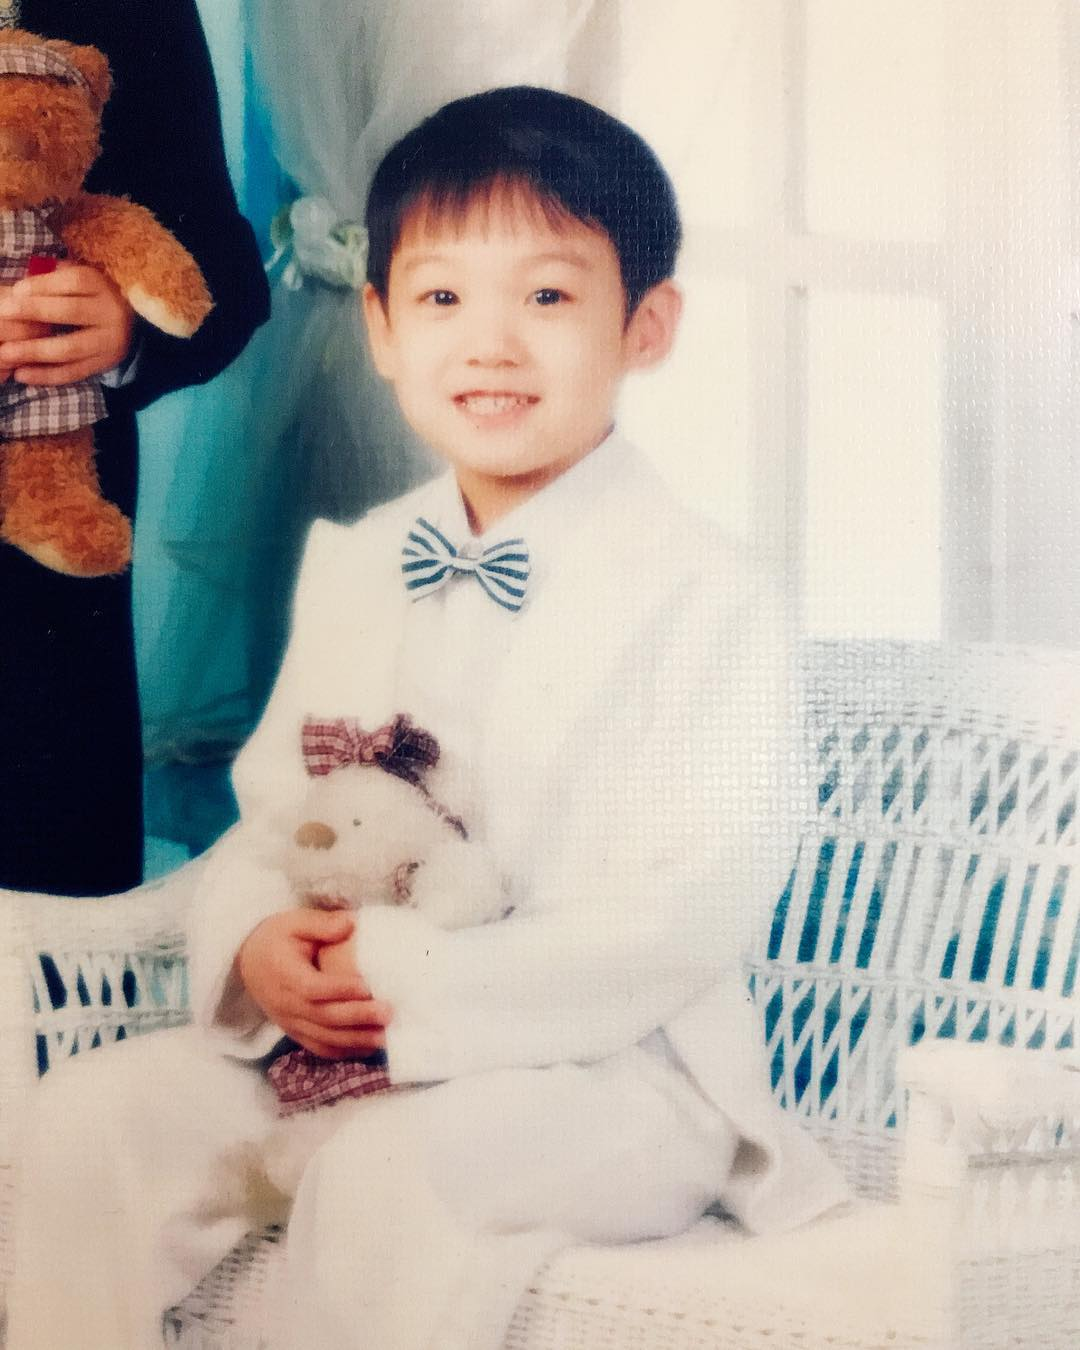 [Picture/IG] BTS Jungkook's Brother Posted A Childhood